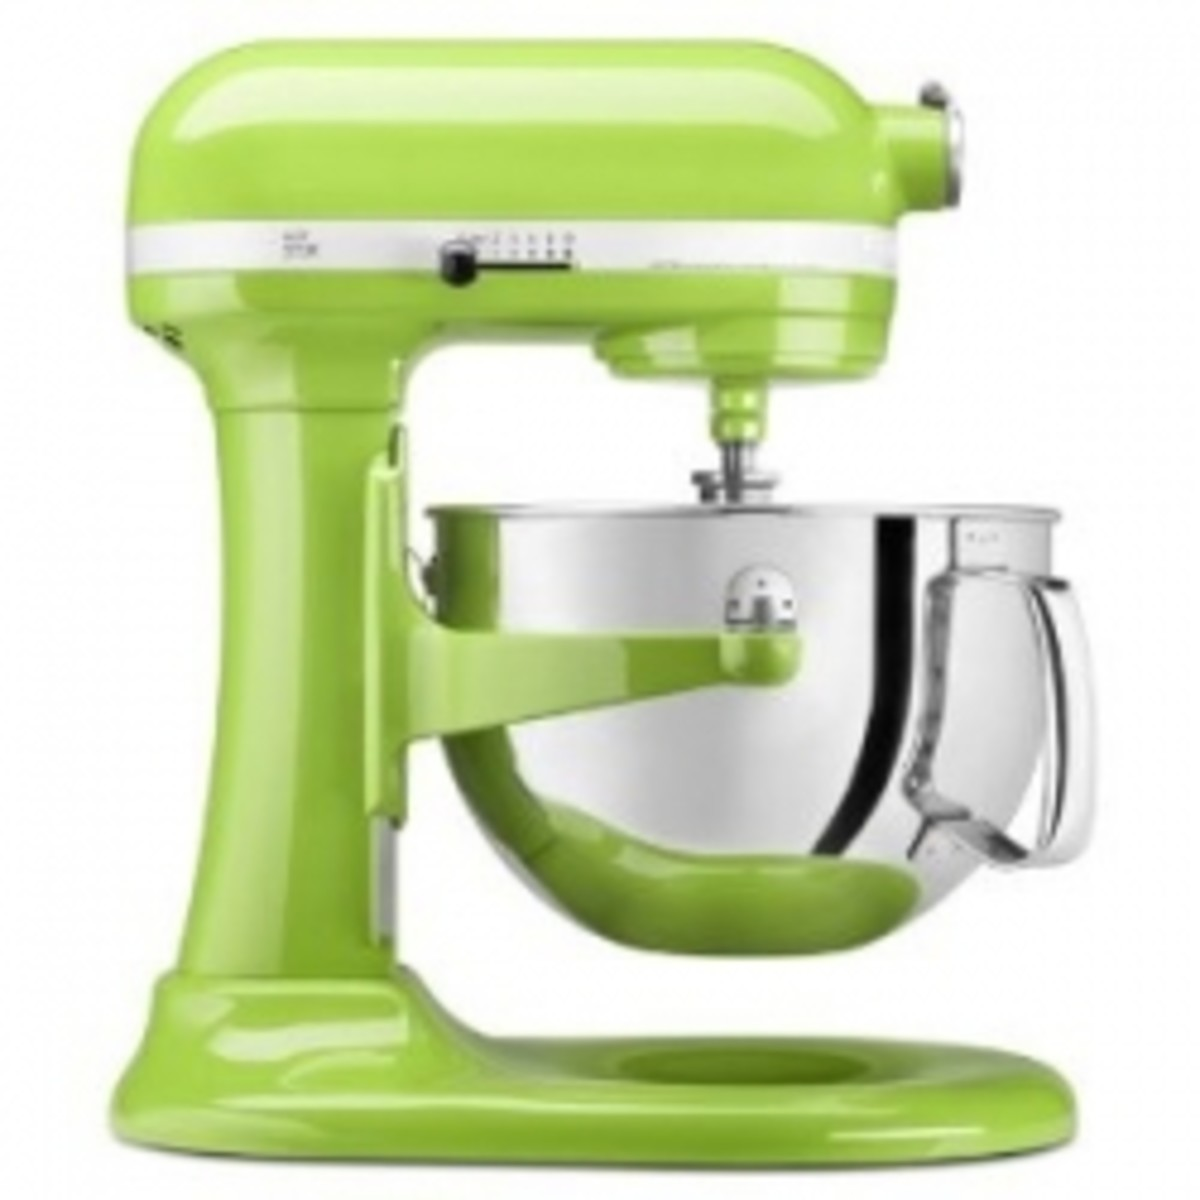 KitchenAid Pro 600 Series Stand Mixer In Green Apple